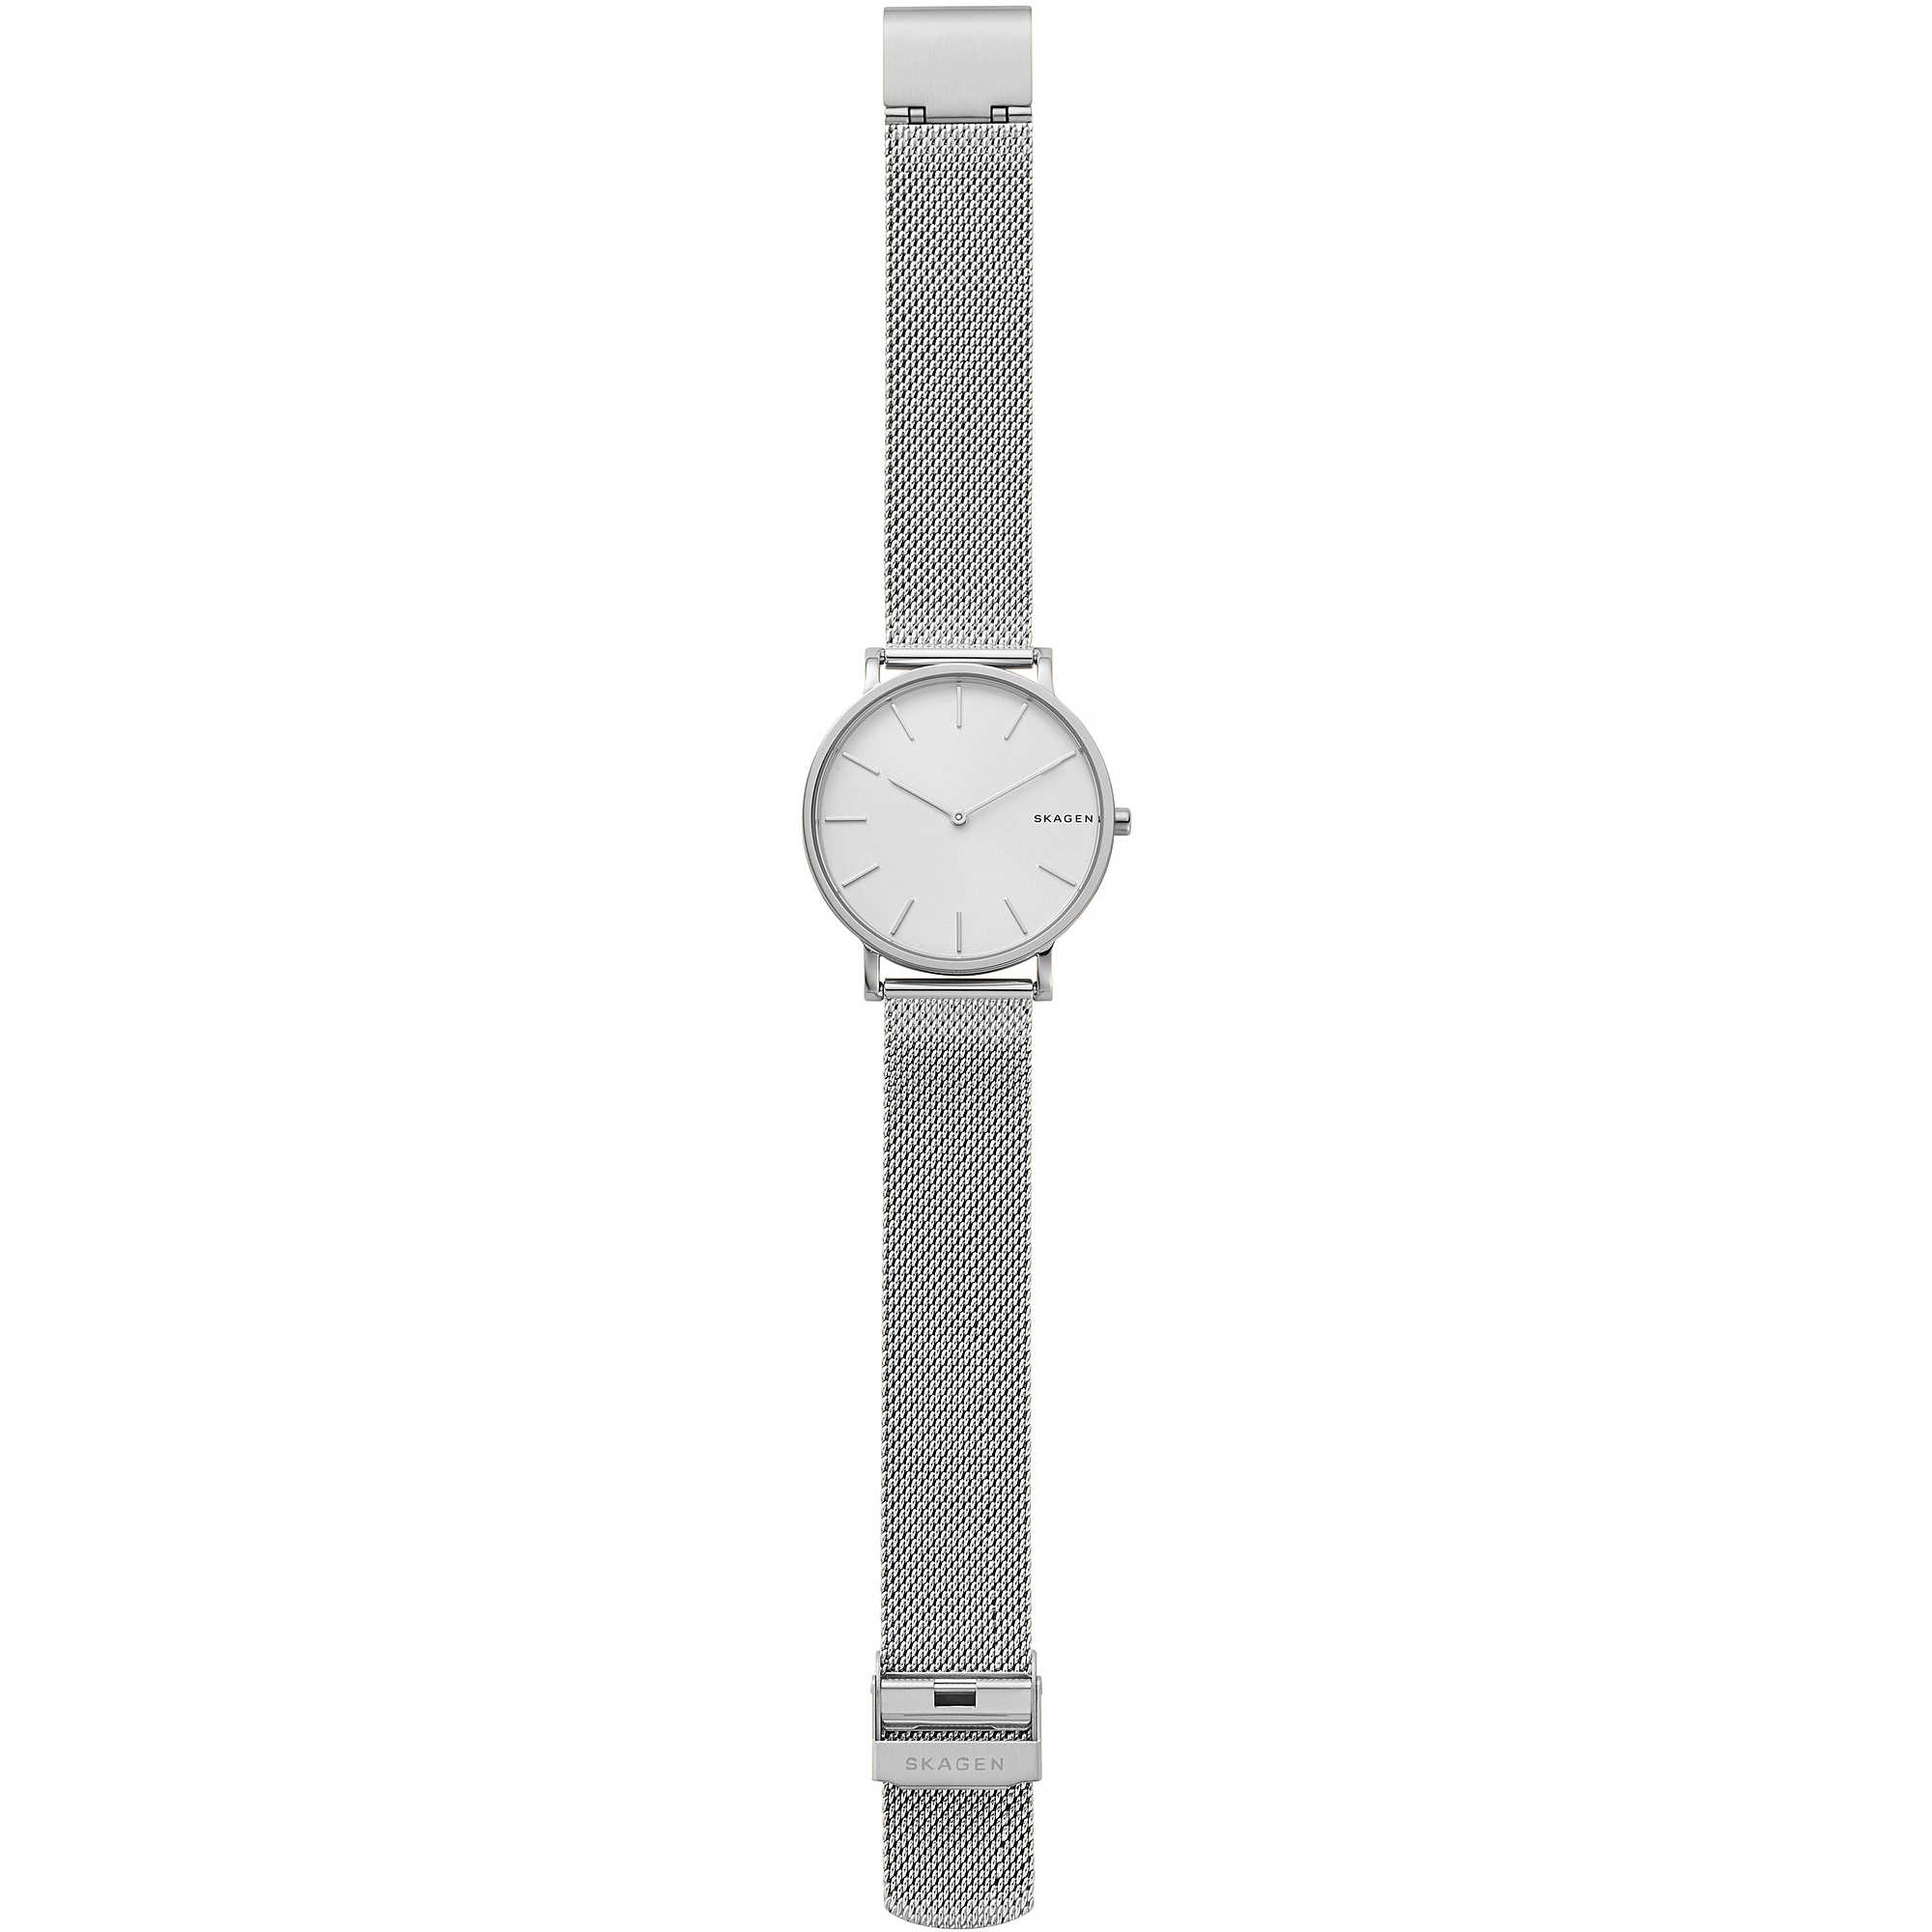 s pdp at johnlewis mesh watch silver watches strap hagen online bracelet buyskagen white main rsp men skagen